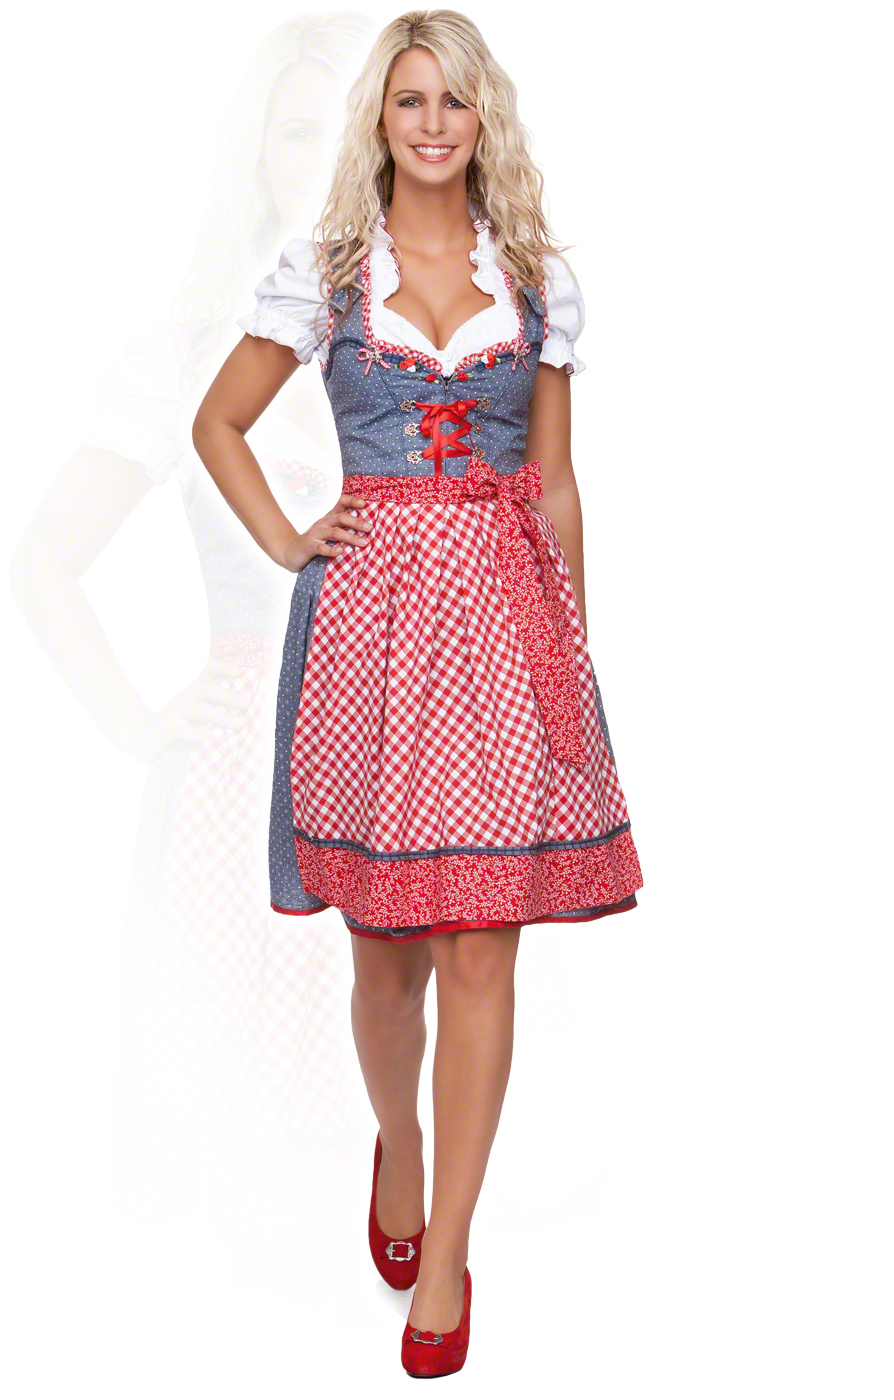 Equipped with the cheap knee-length dirndls for every event